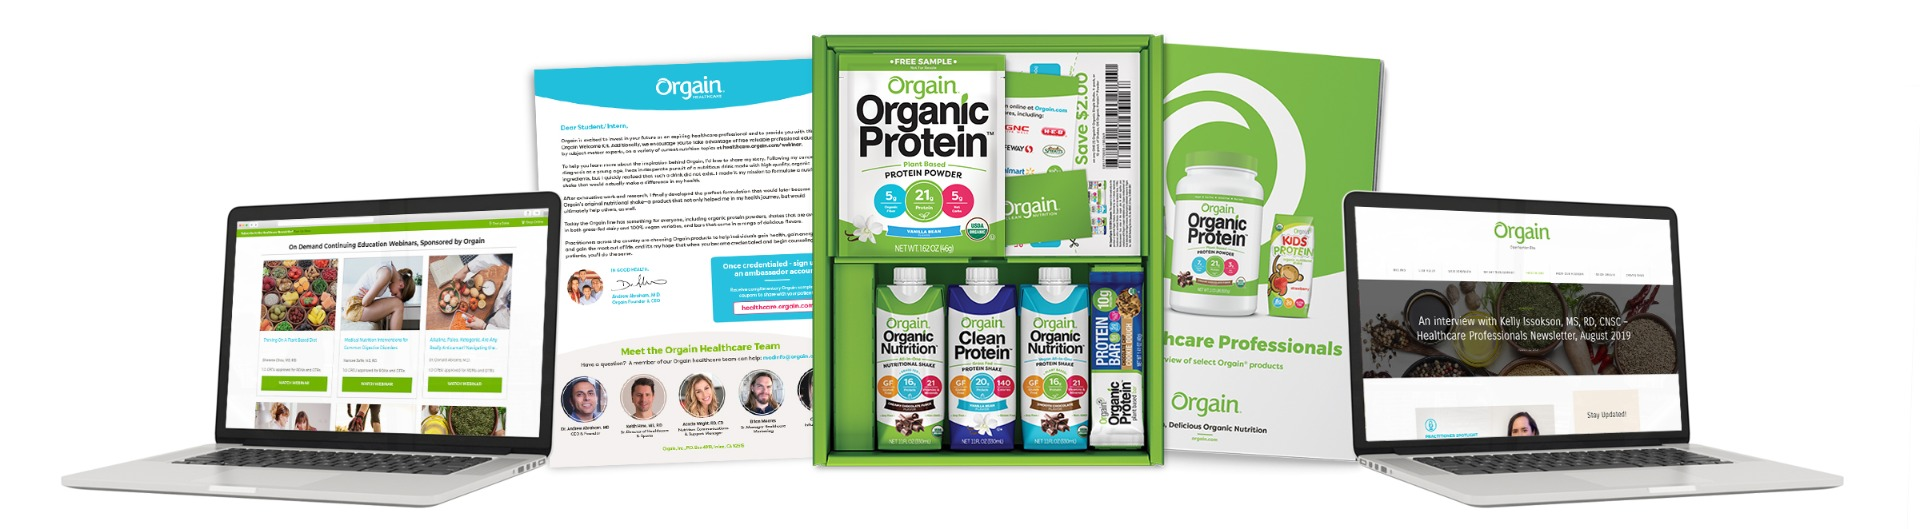 Orgain Healthcare Student/Intern Welcome Kit